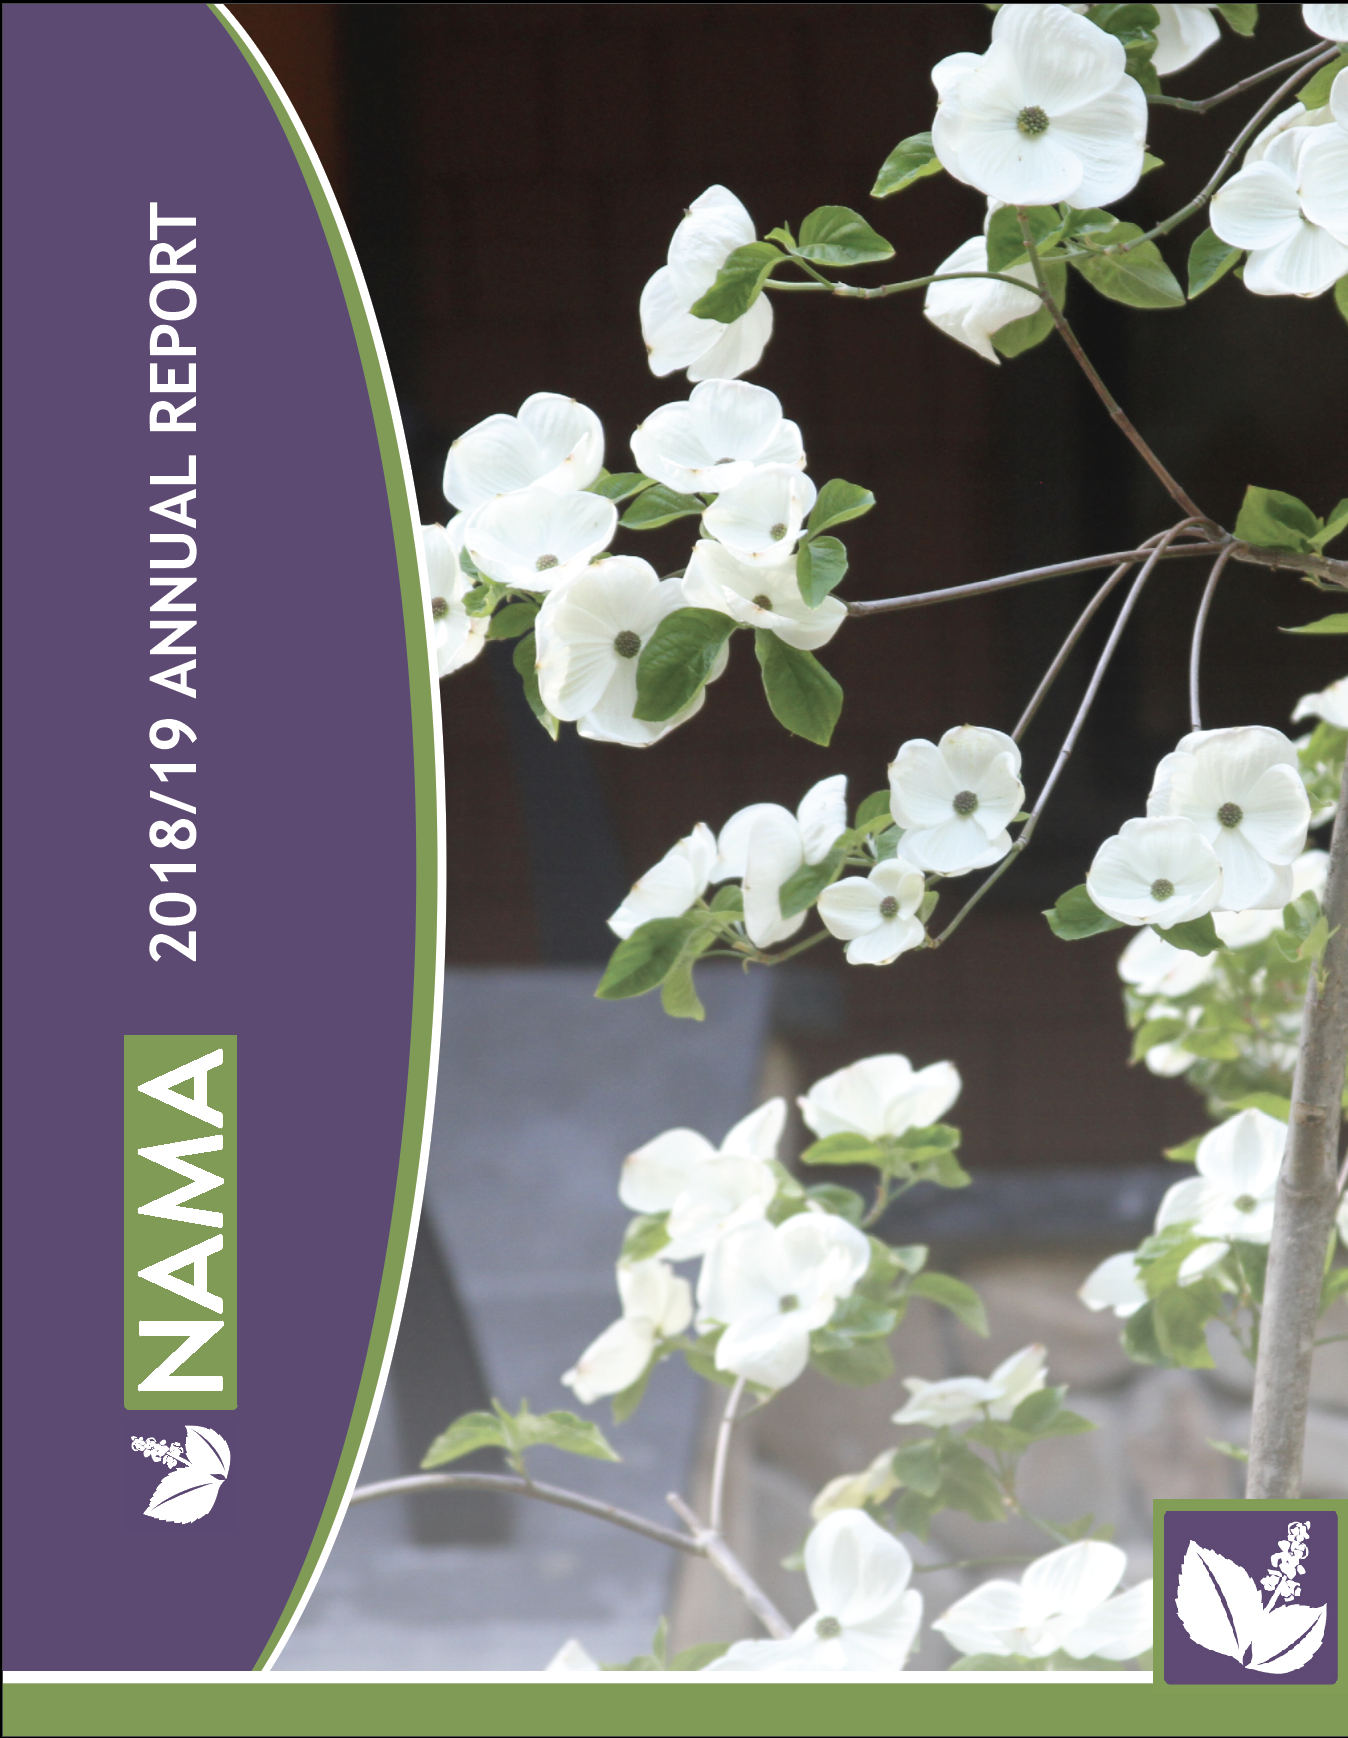 Read our 2018/2019 Annual Report! - Learn about all the great things NAMA continues to do!